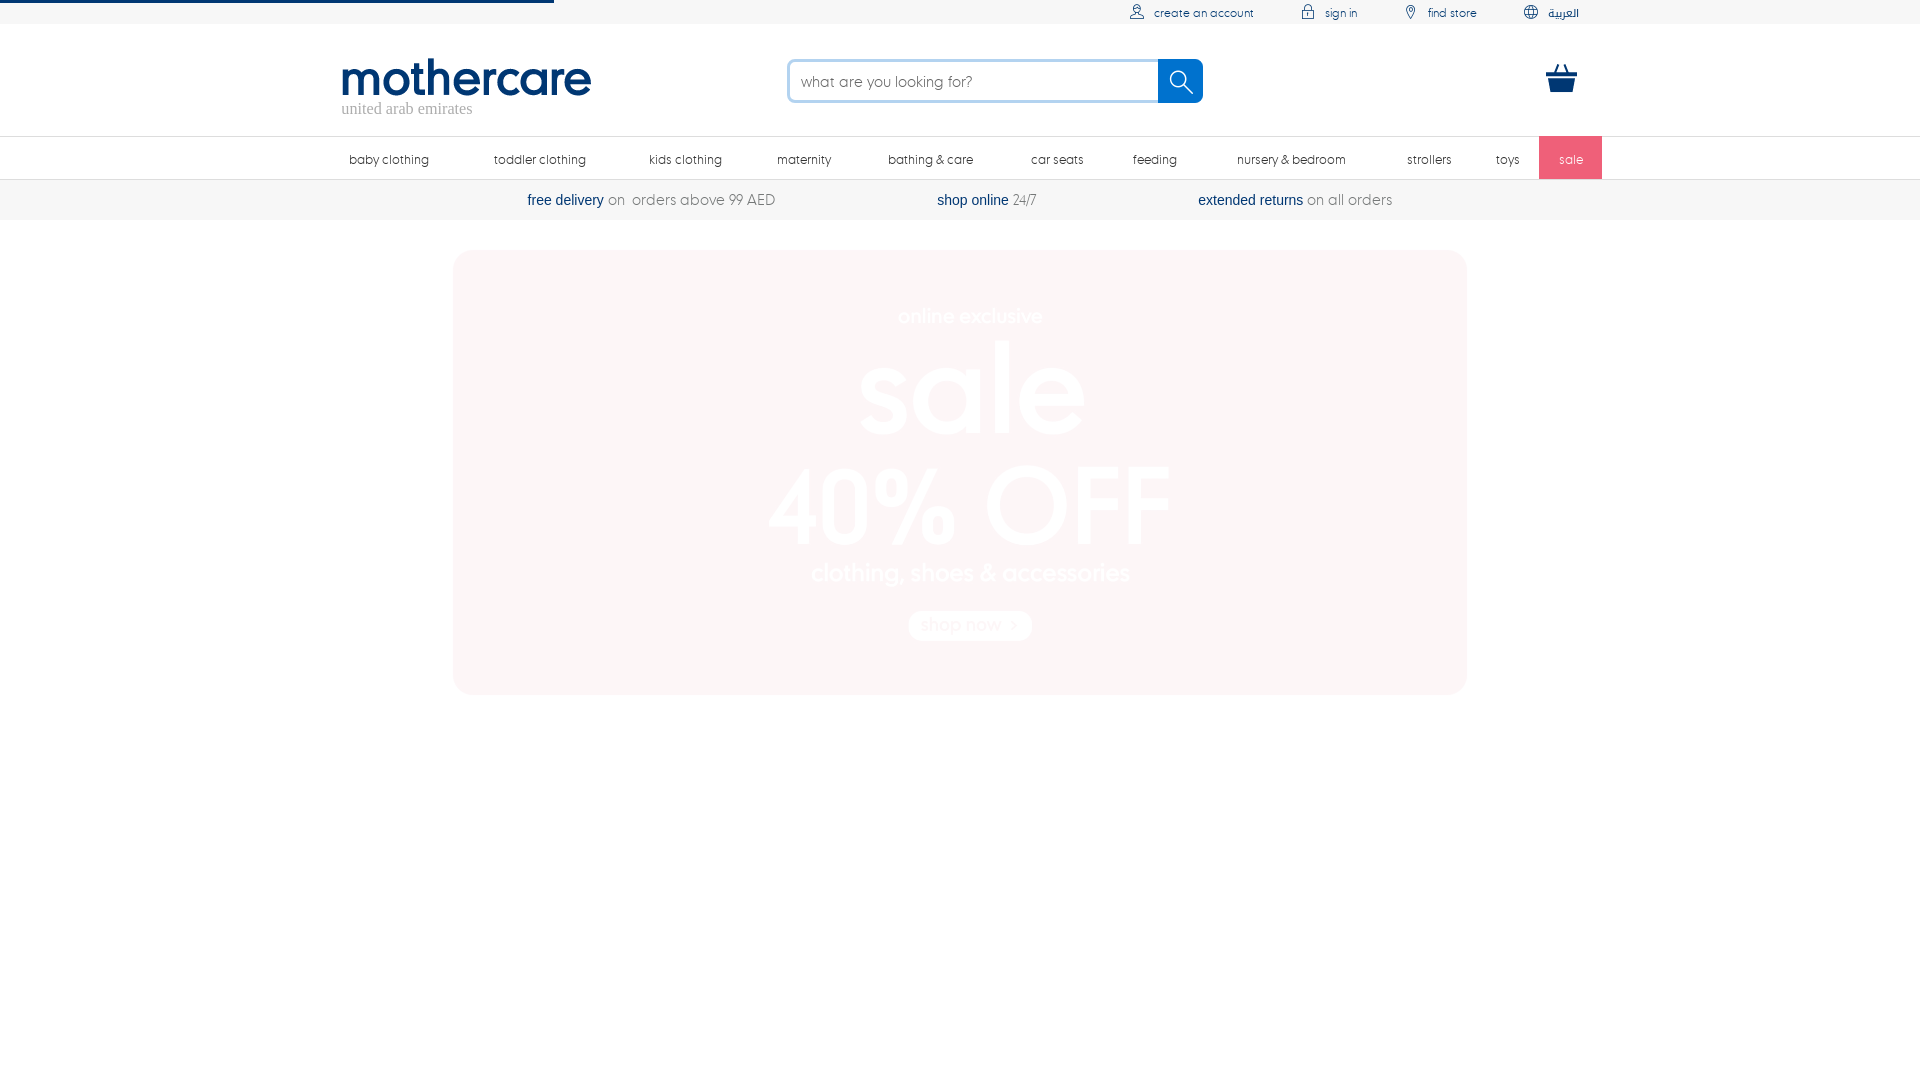 Mothercare GCC / CPS website